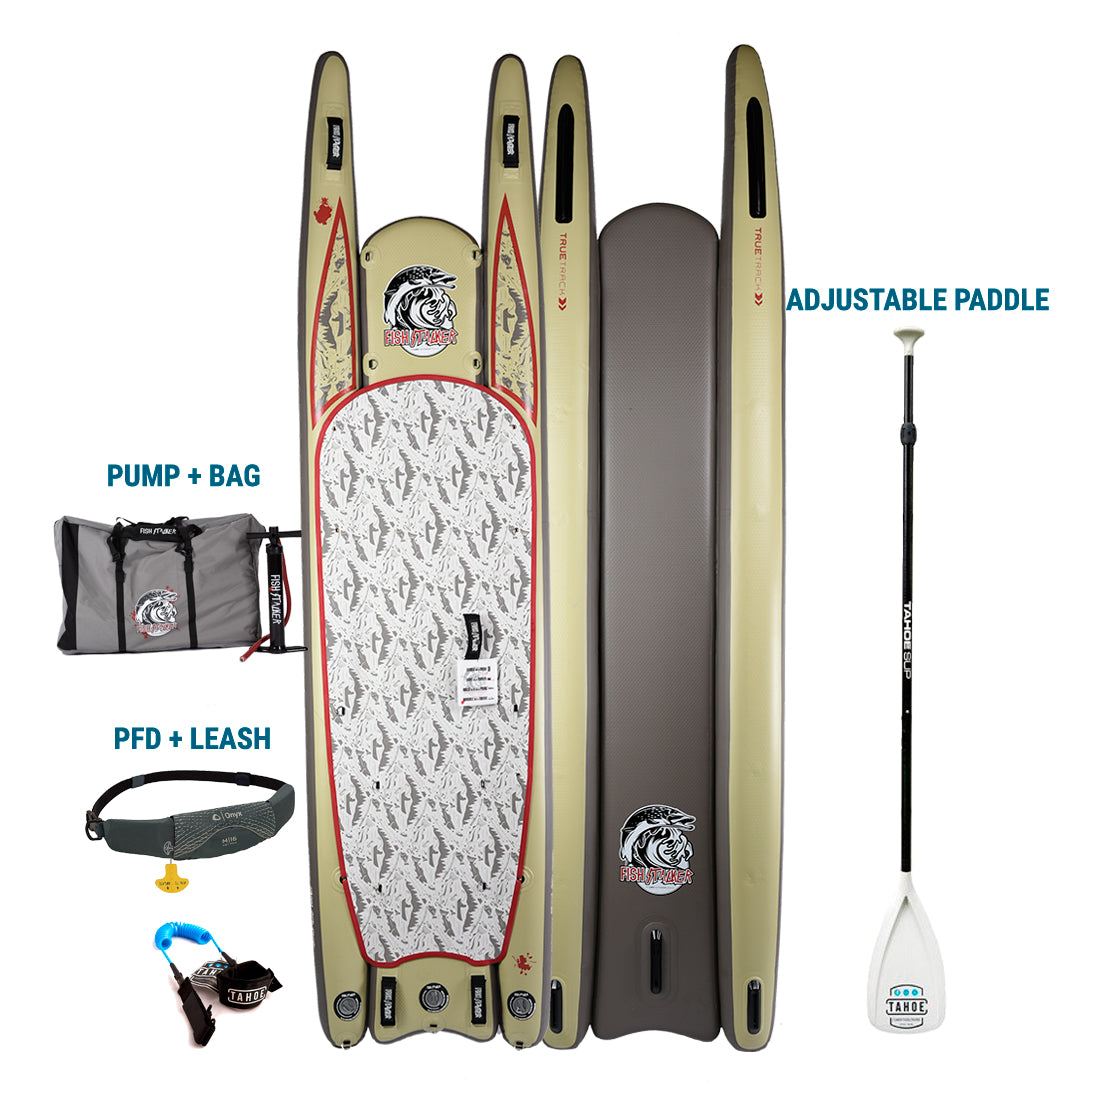 TRUCKEE/AUBURN RENTAL: Premium Fish Stalker Inflatable + Pump/Bag + Paddle + Leash/PFD Rental 4theoutdoors America US USA SUP outdoors